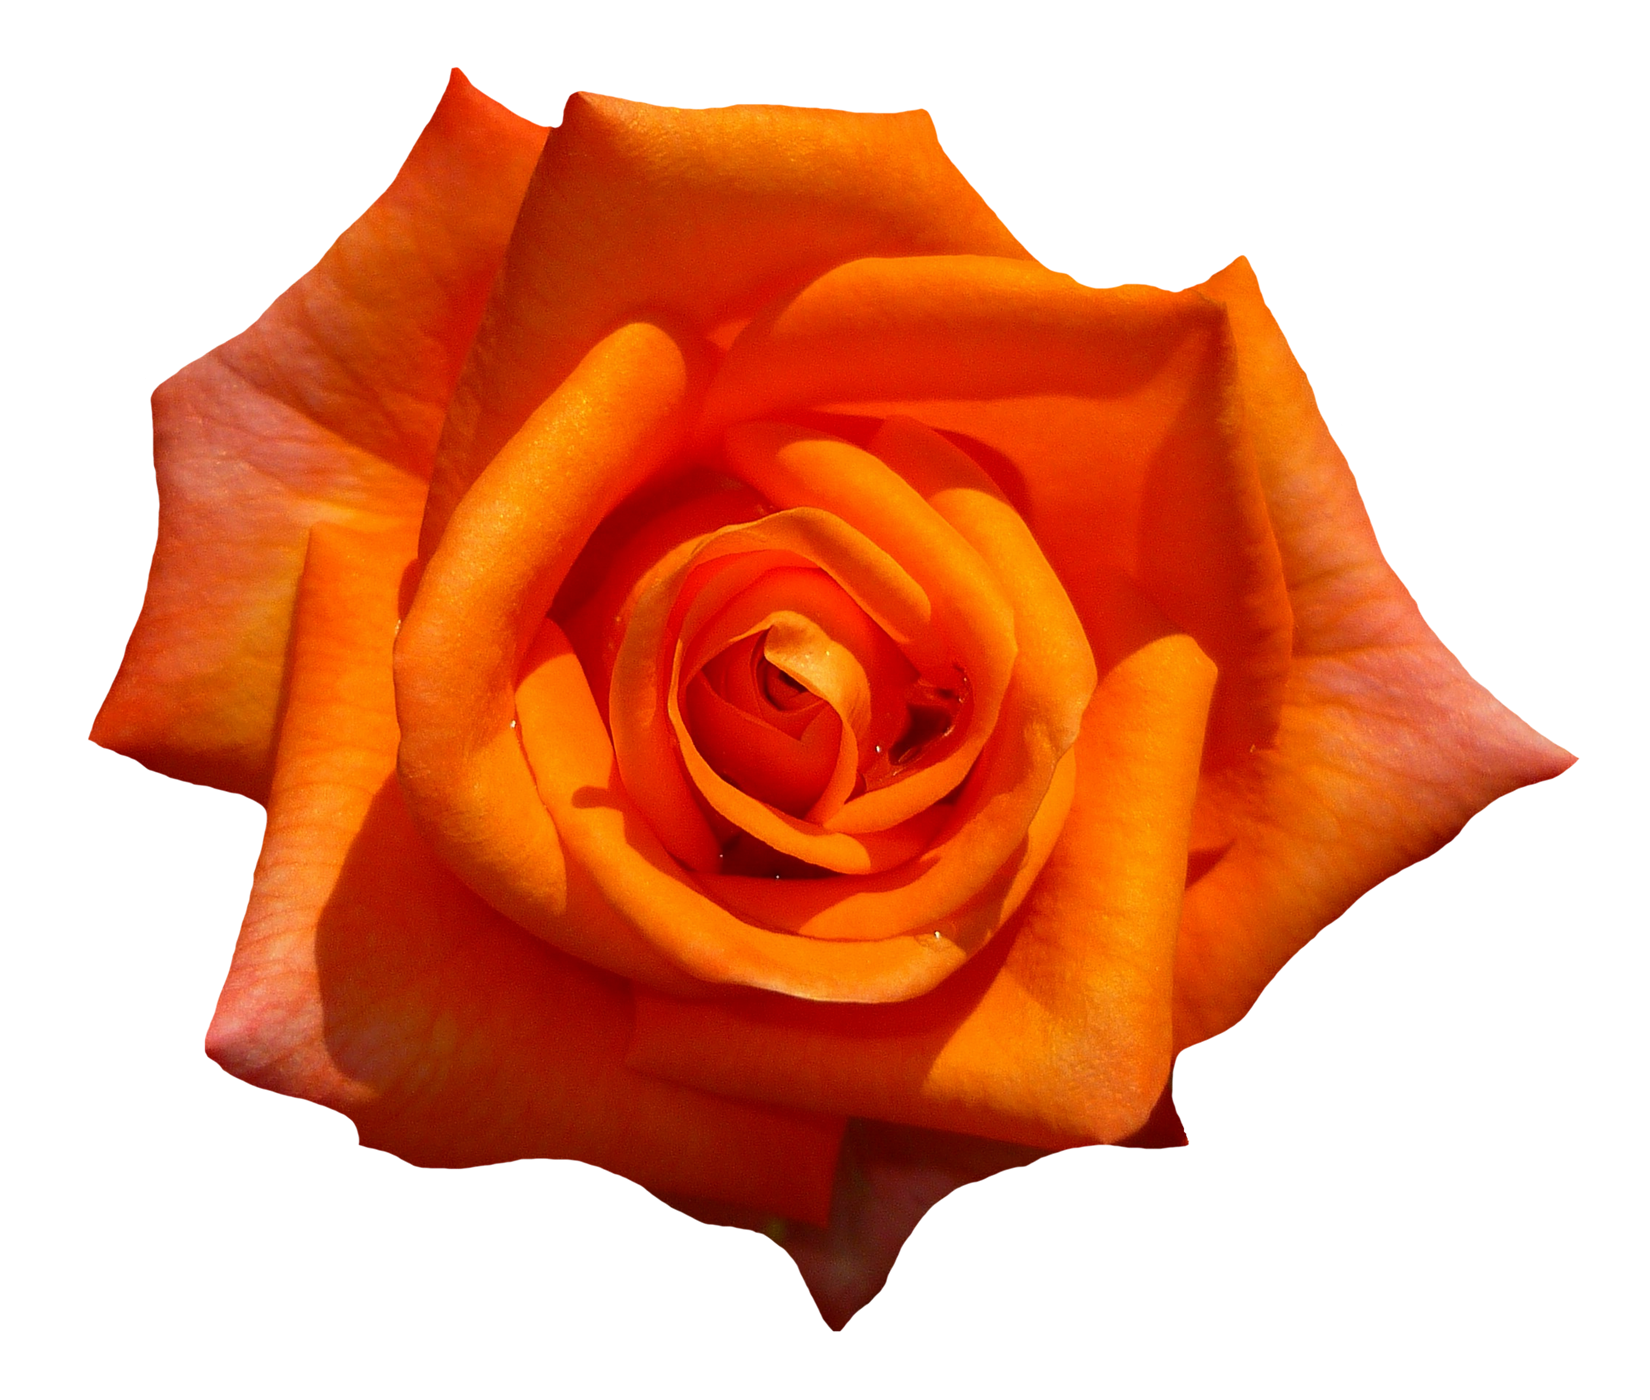 Rose top view image. Orange flower png